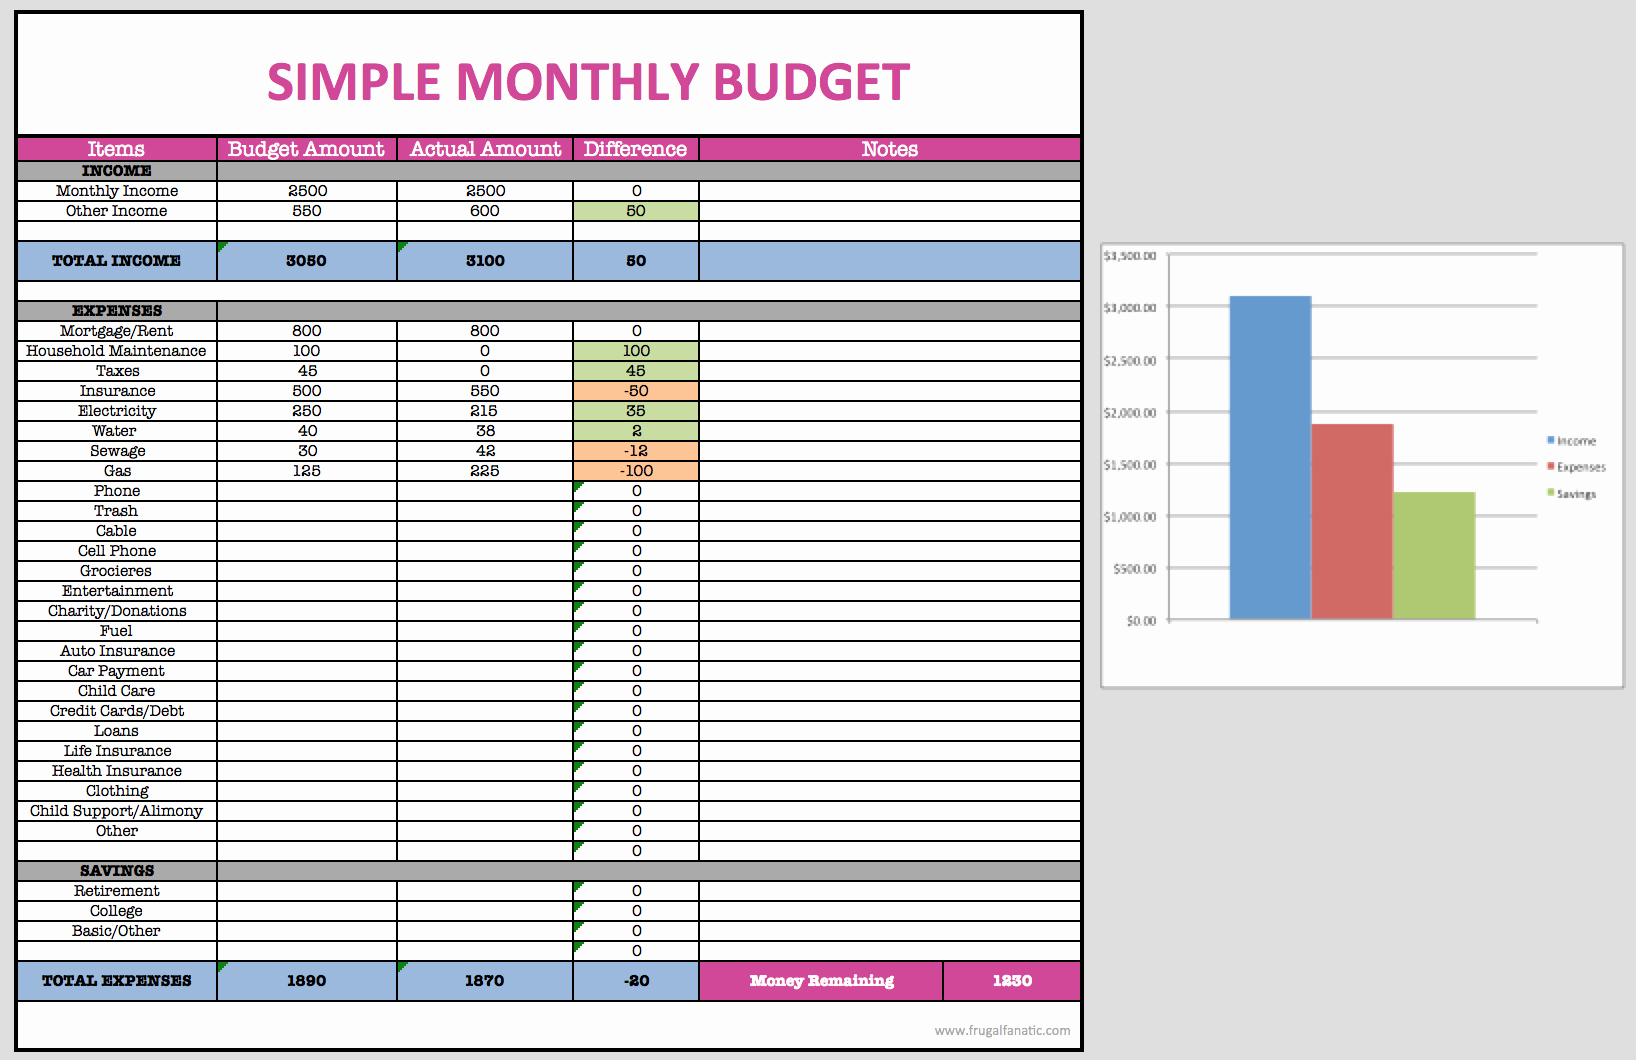 Monthly Budget Excel Template Beautiful Monthly Bud Spreadsheet Frugal Fanatic Shop